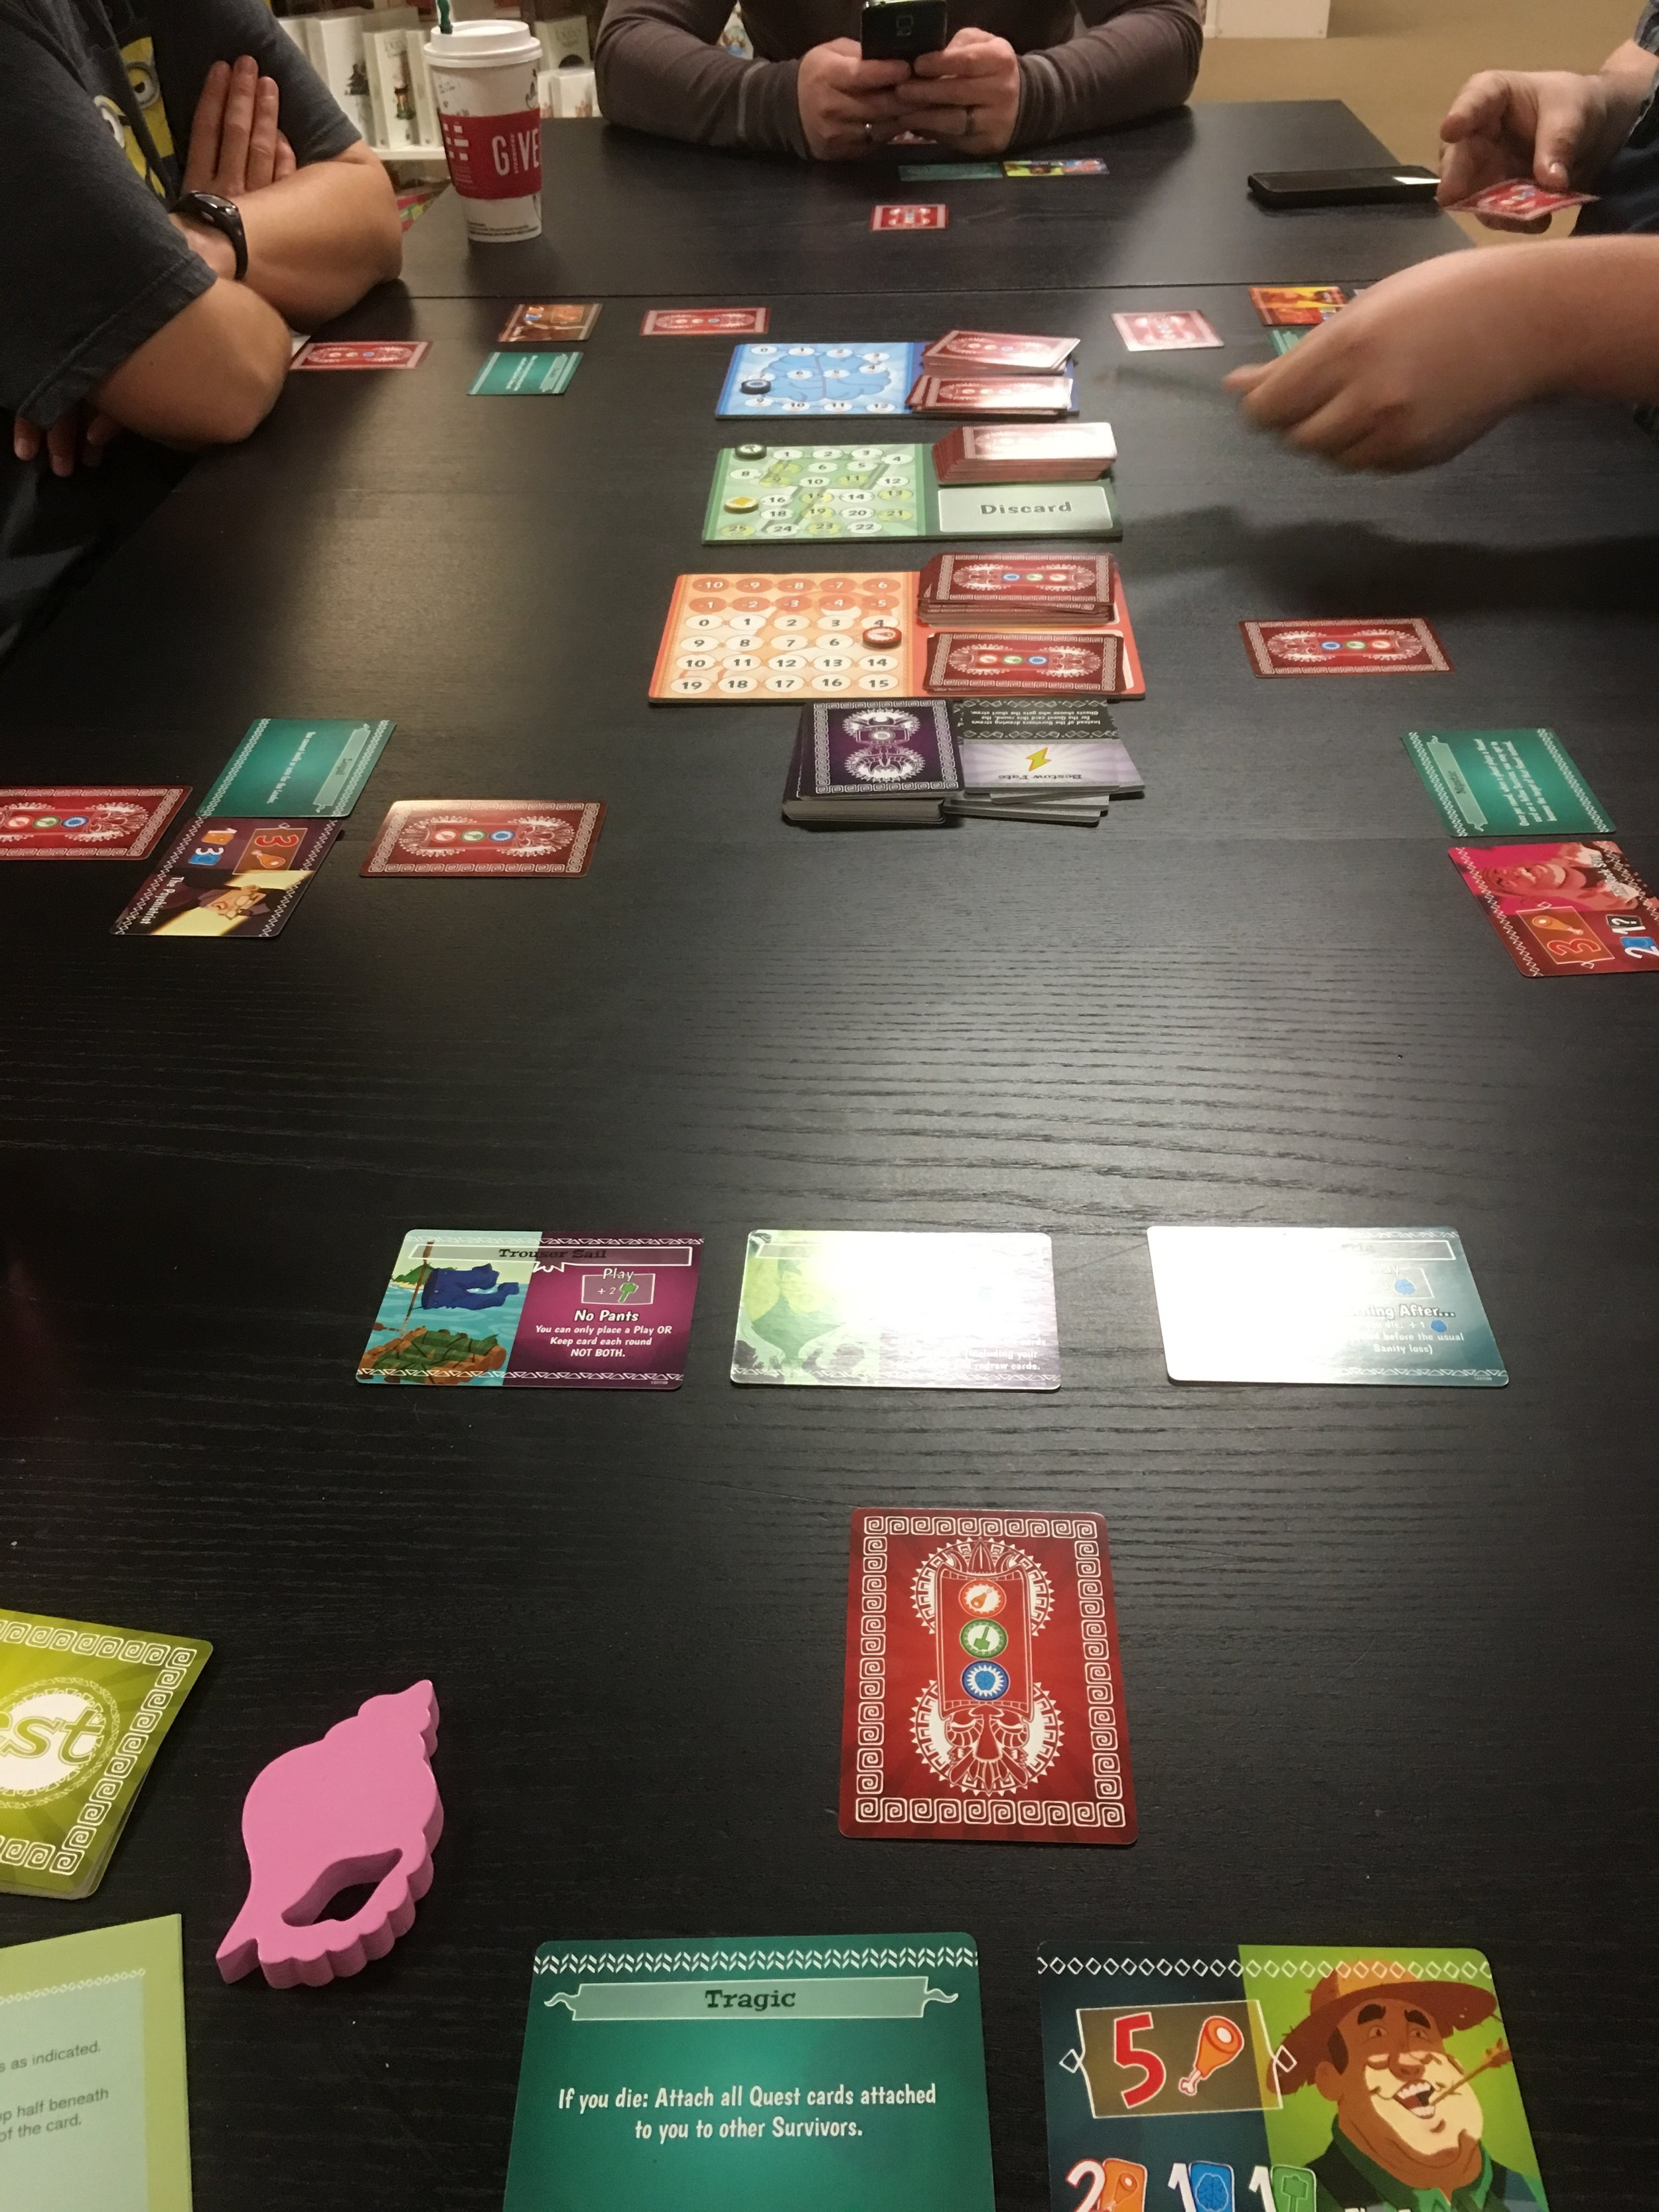 A 6-player game in progress. This one takes up a fair amount of space.